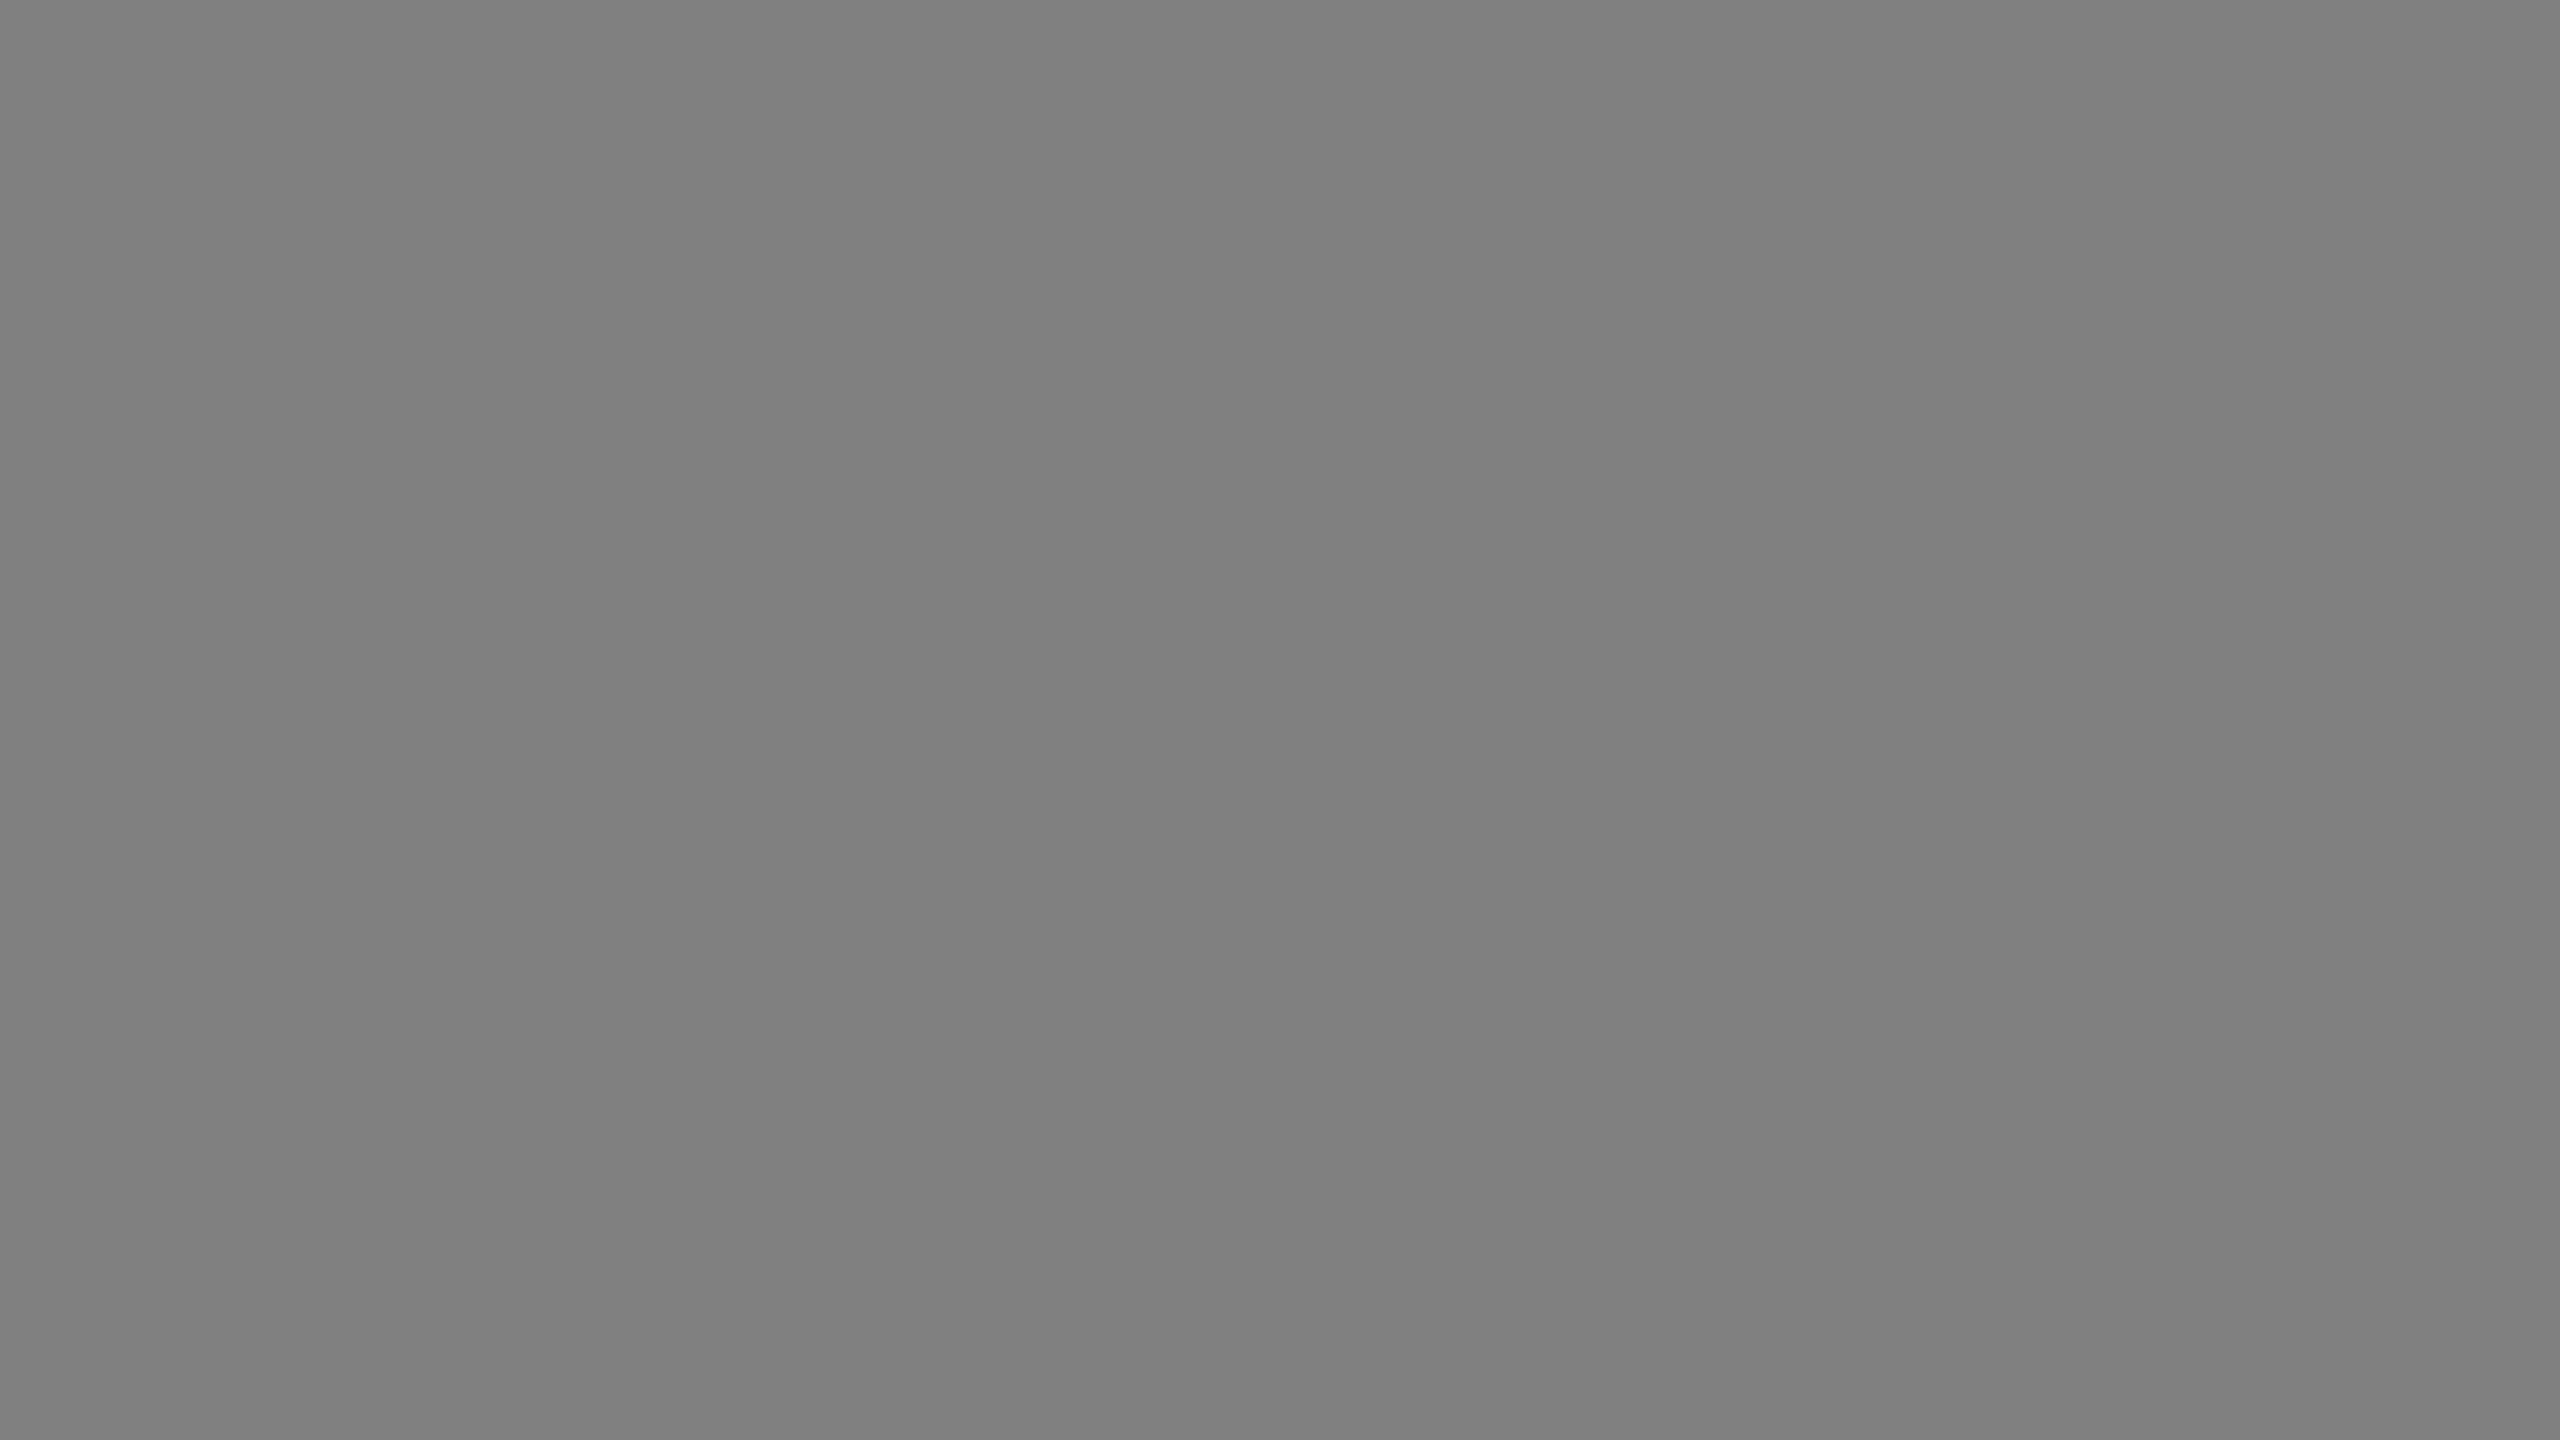 2560x1440 Trolley Grey Solid Color Background